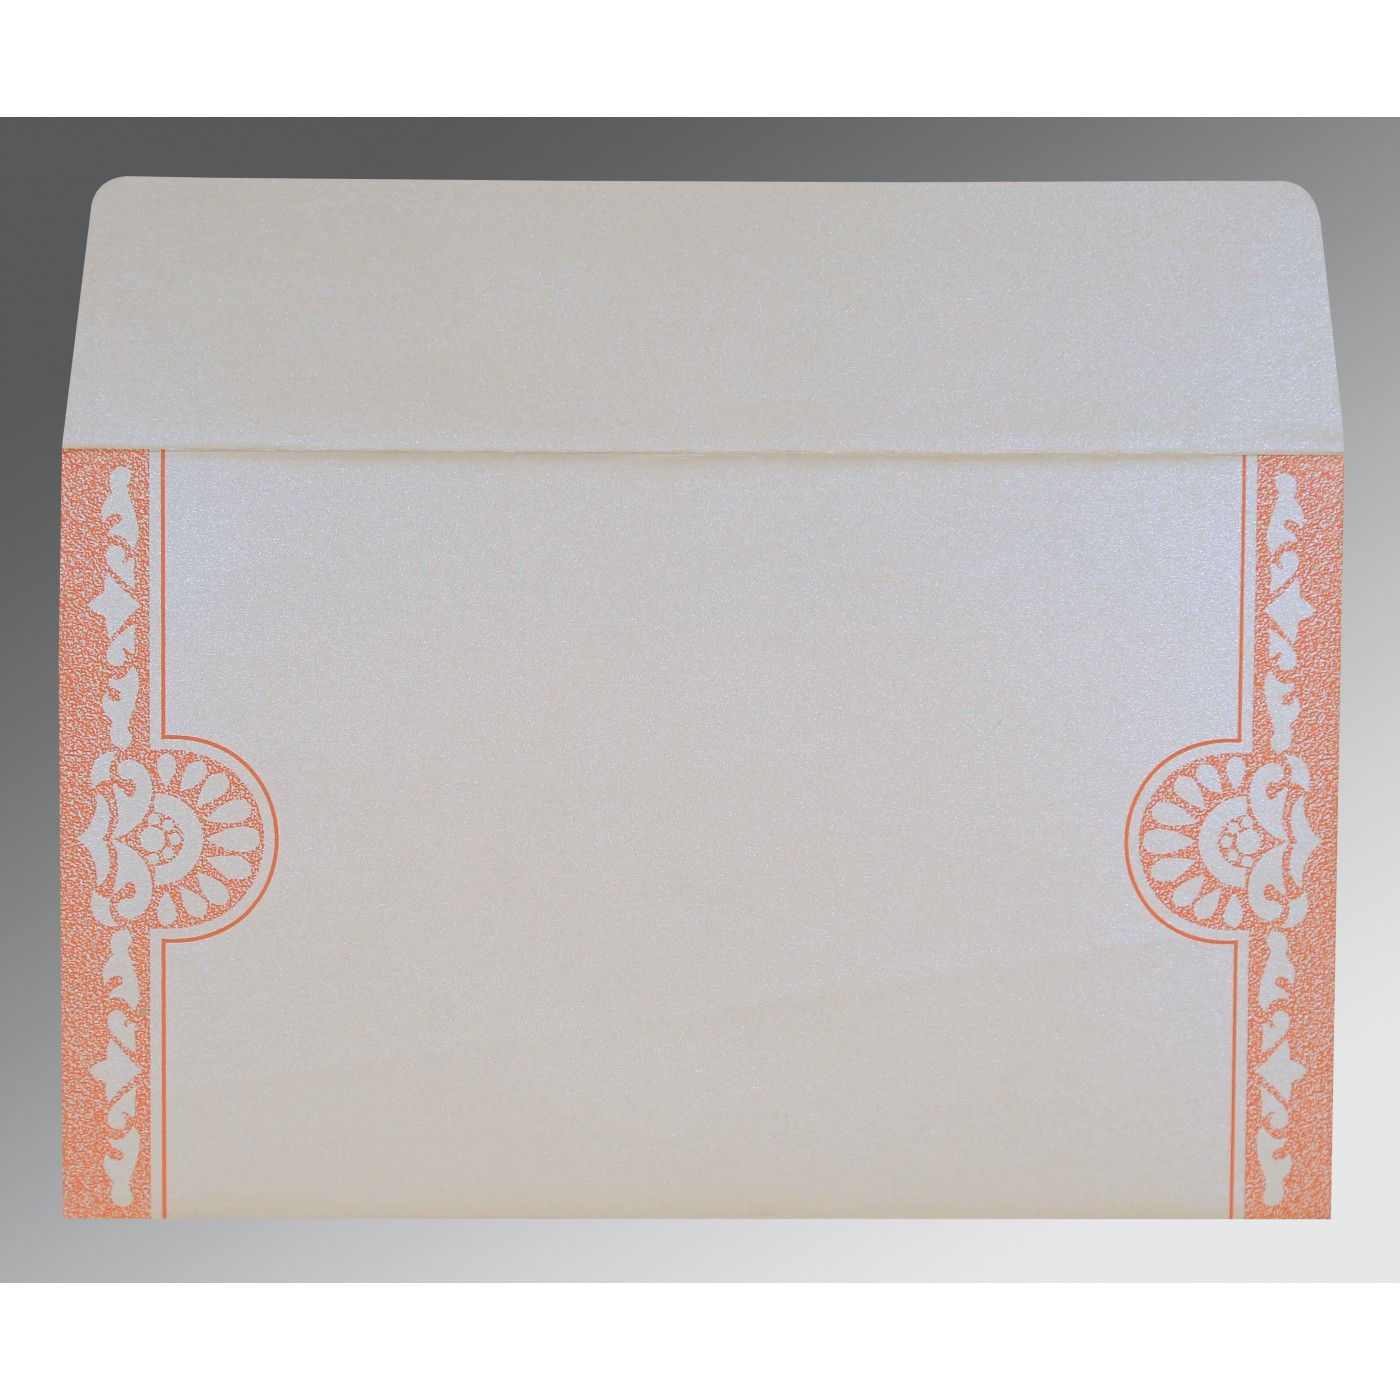 OFF-WHITE BLUE SHIMMERY FLORAL THEMED - SCREEN PRINTED WEDDING CARD : CI-8227N - IndianWeddingCards